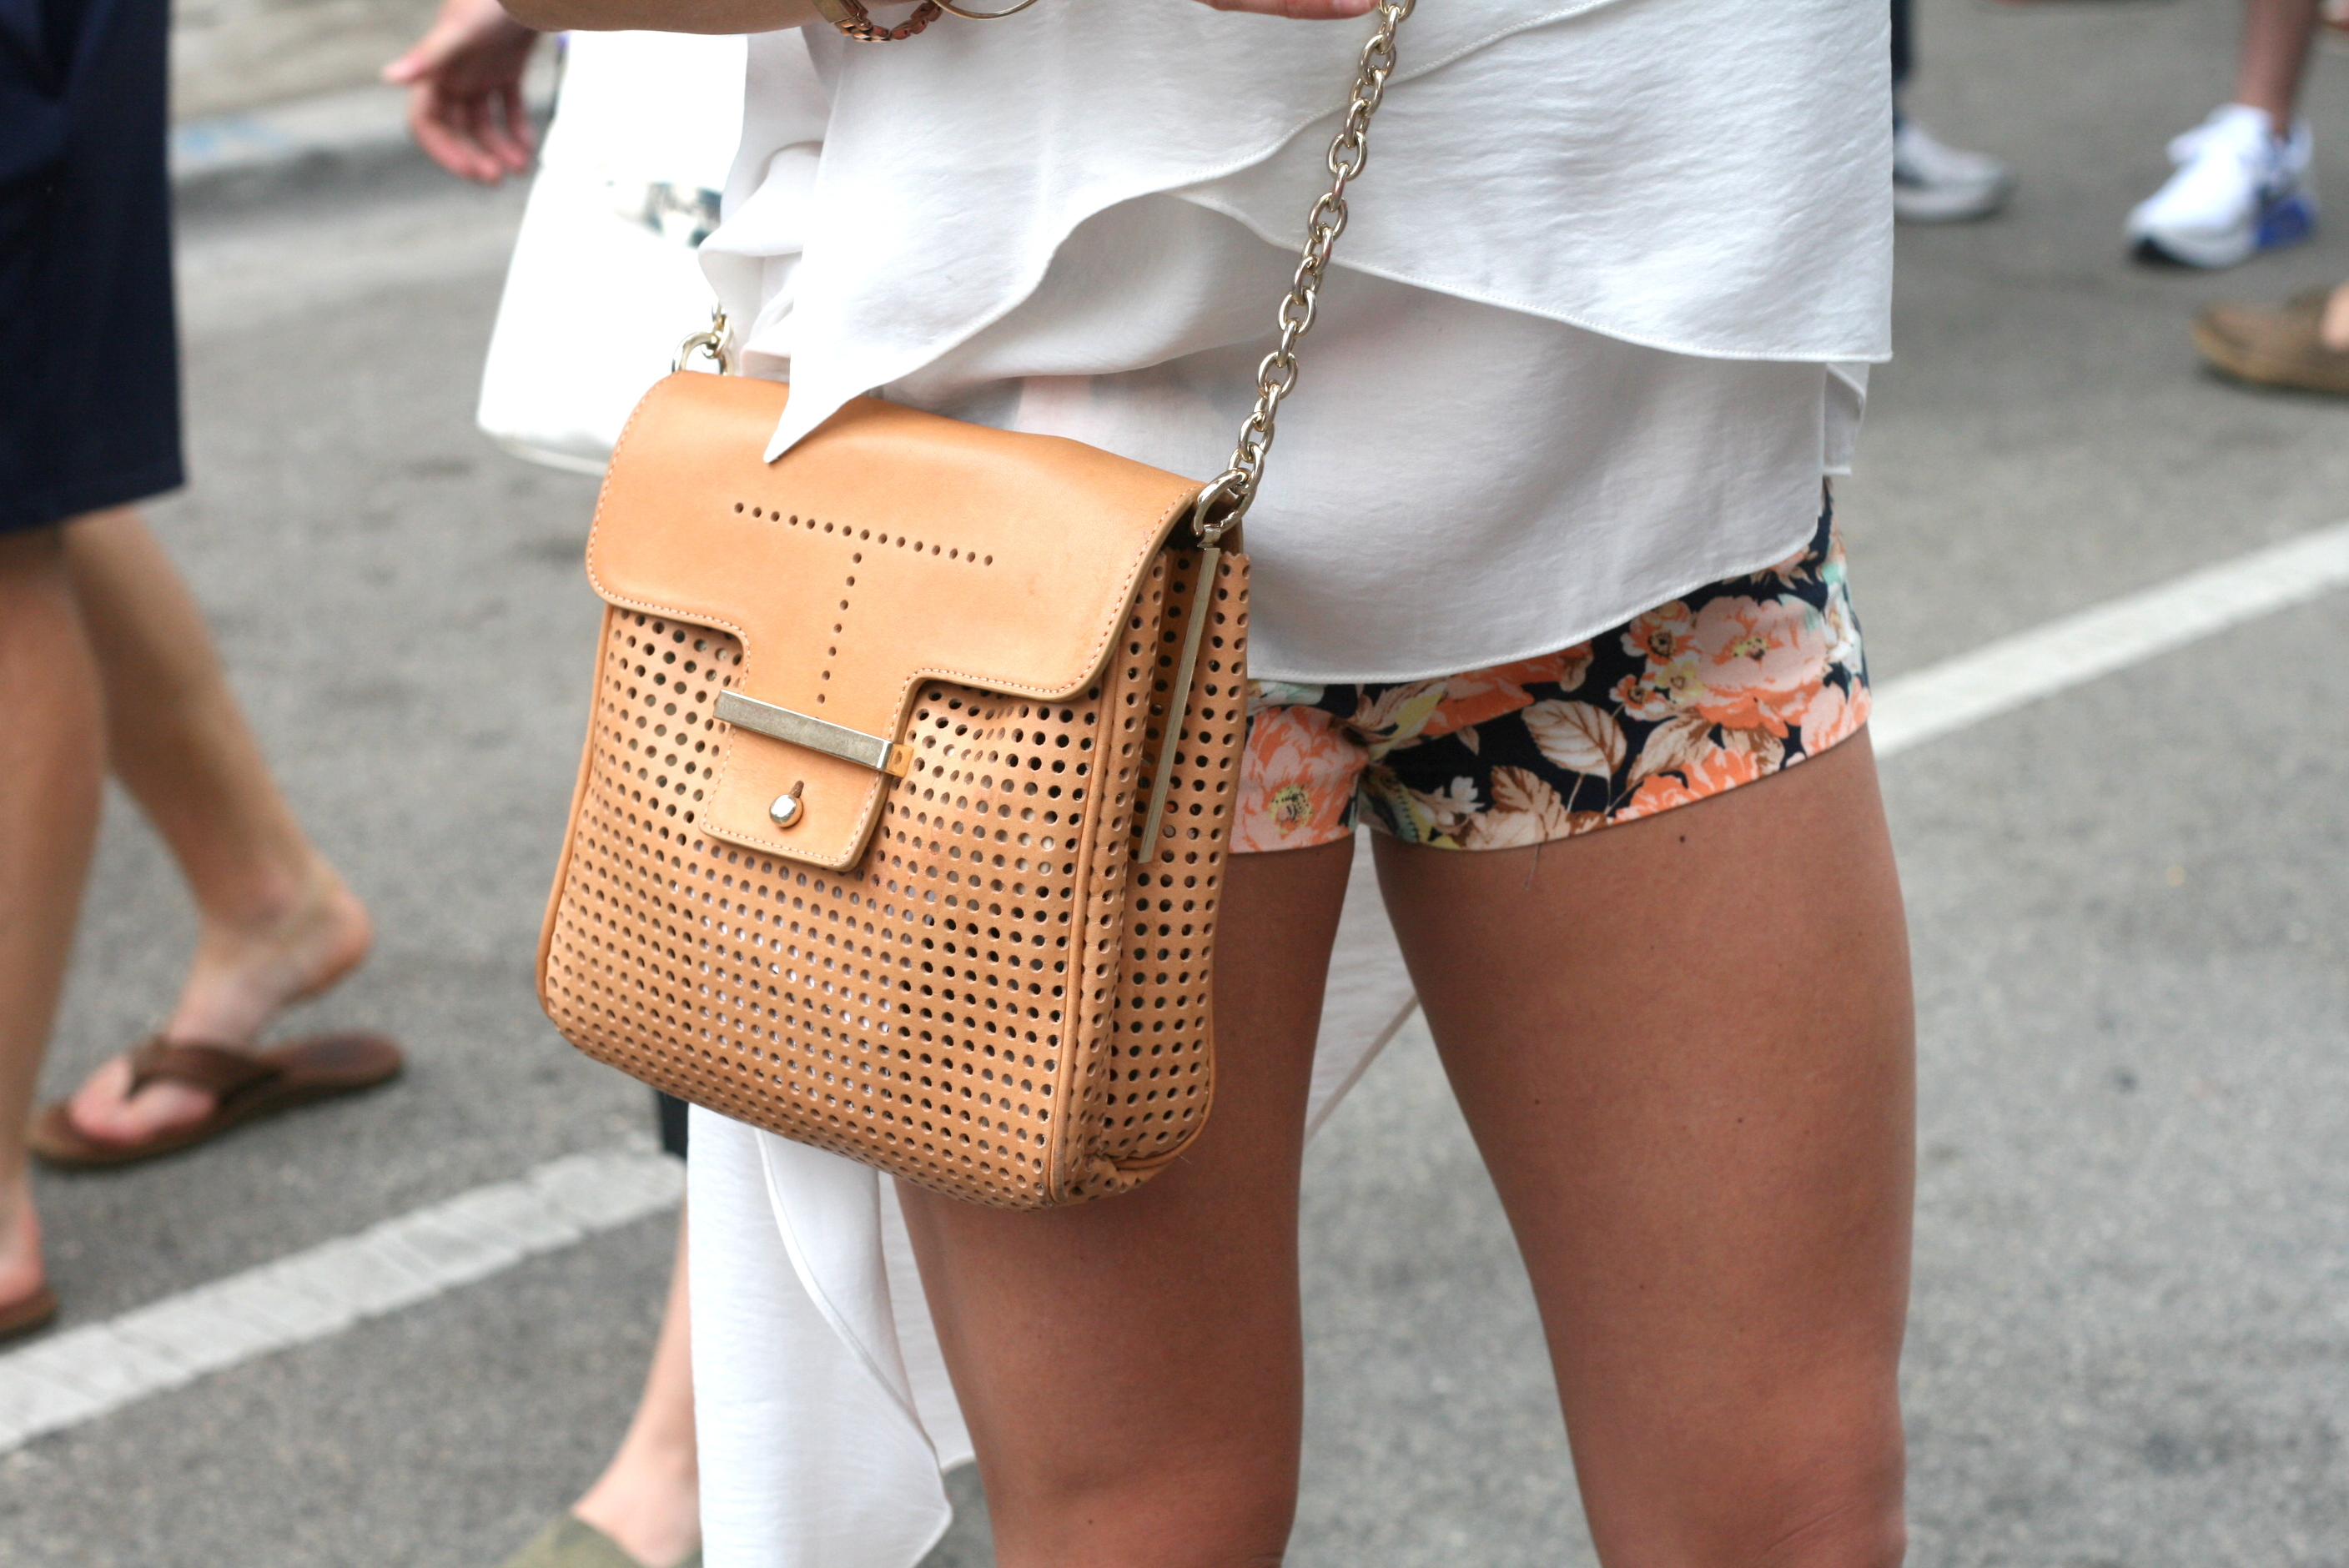 Bag by LOFT, mind you- still lusting over that boho-chic top..!